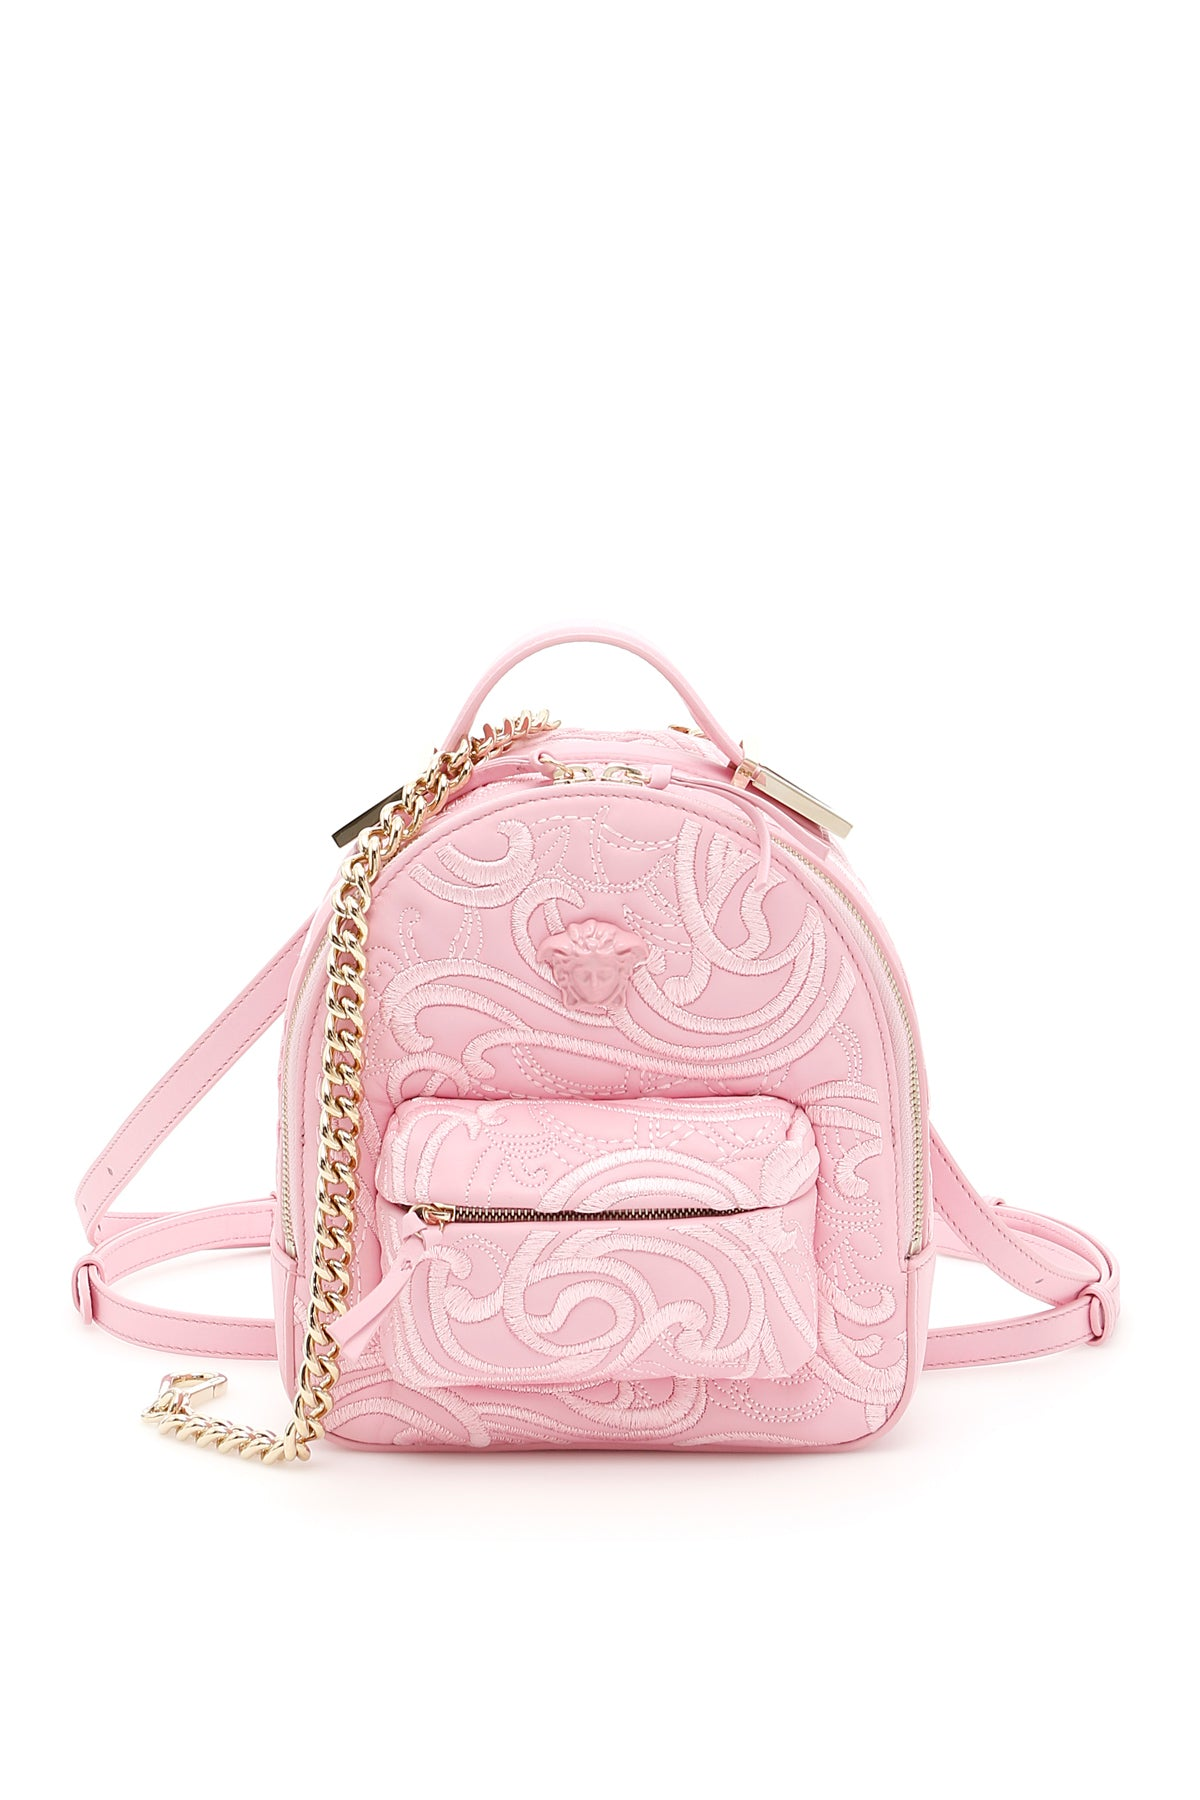 VERSACE PALAZZO EMBROIDERED BACKPACK